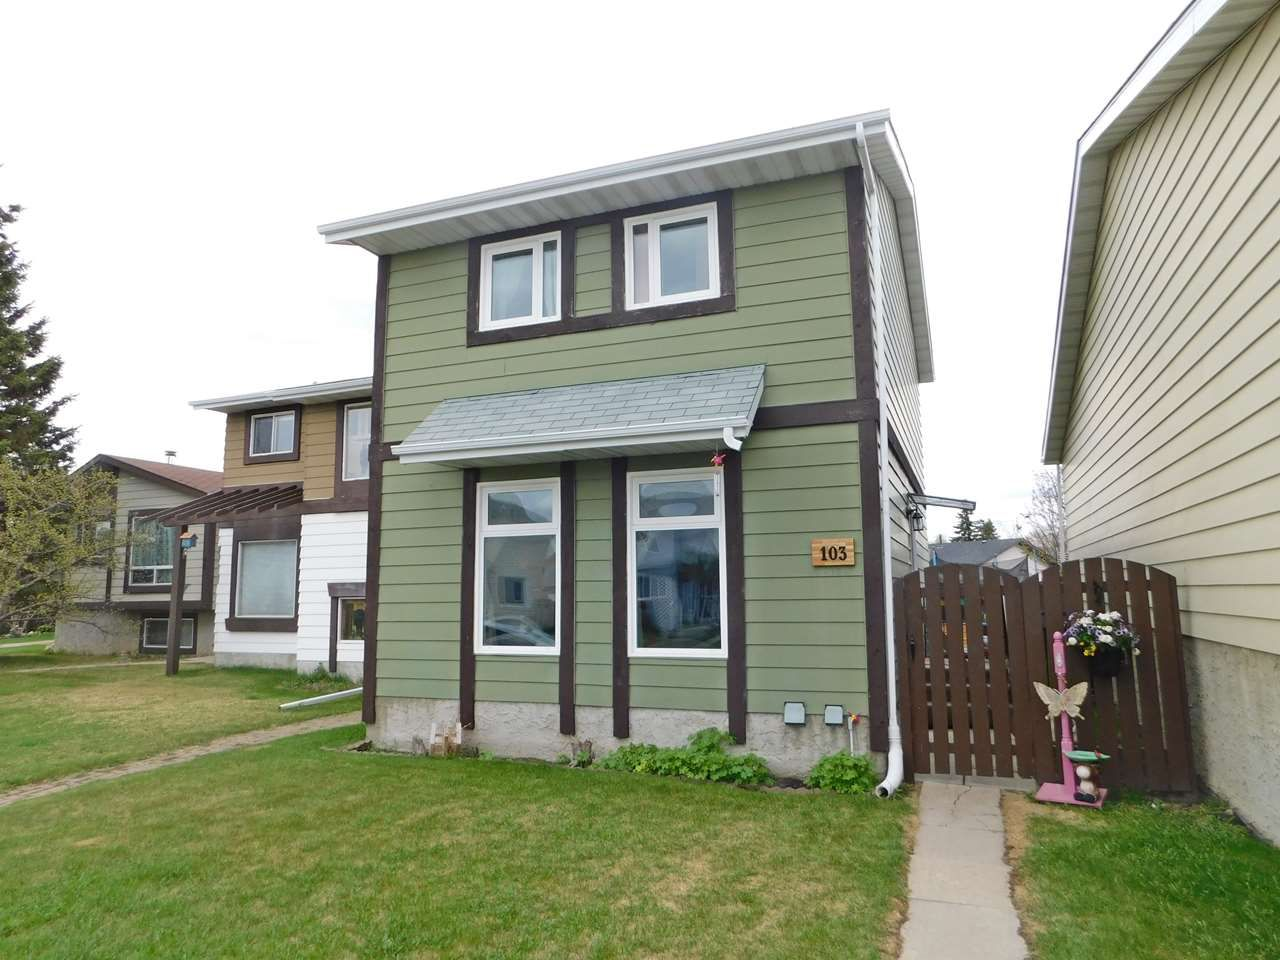 Main Photo: 103 Birch Drive: Gibbons House for sale : MLS®# E4149260